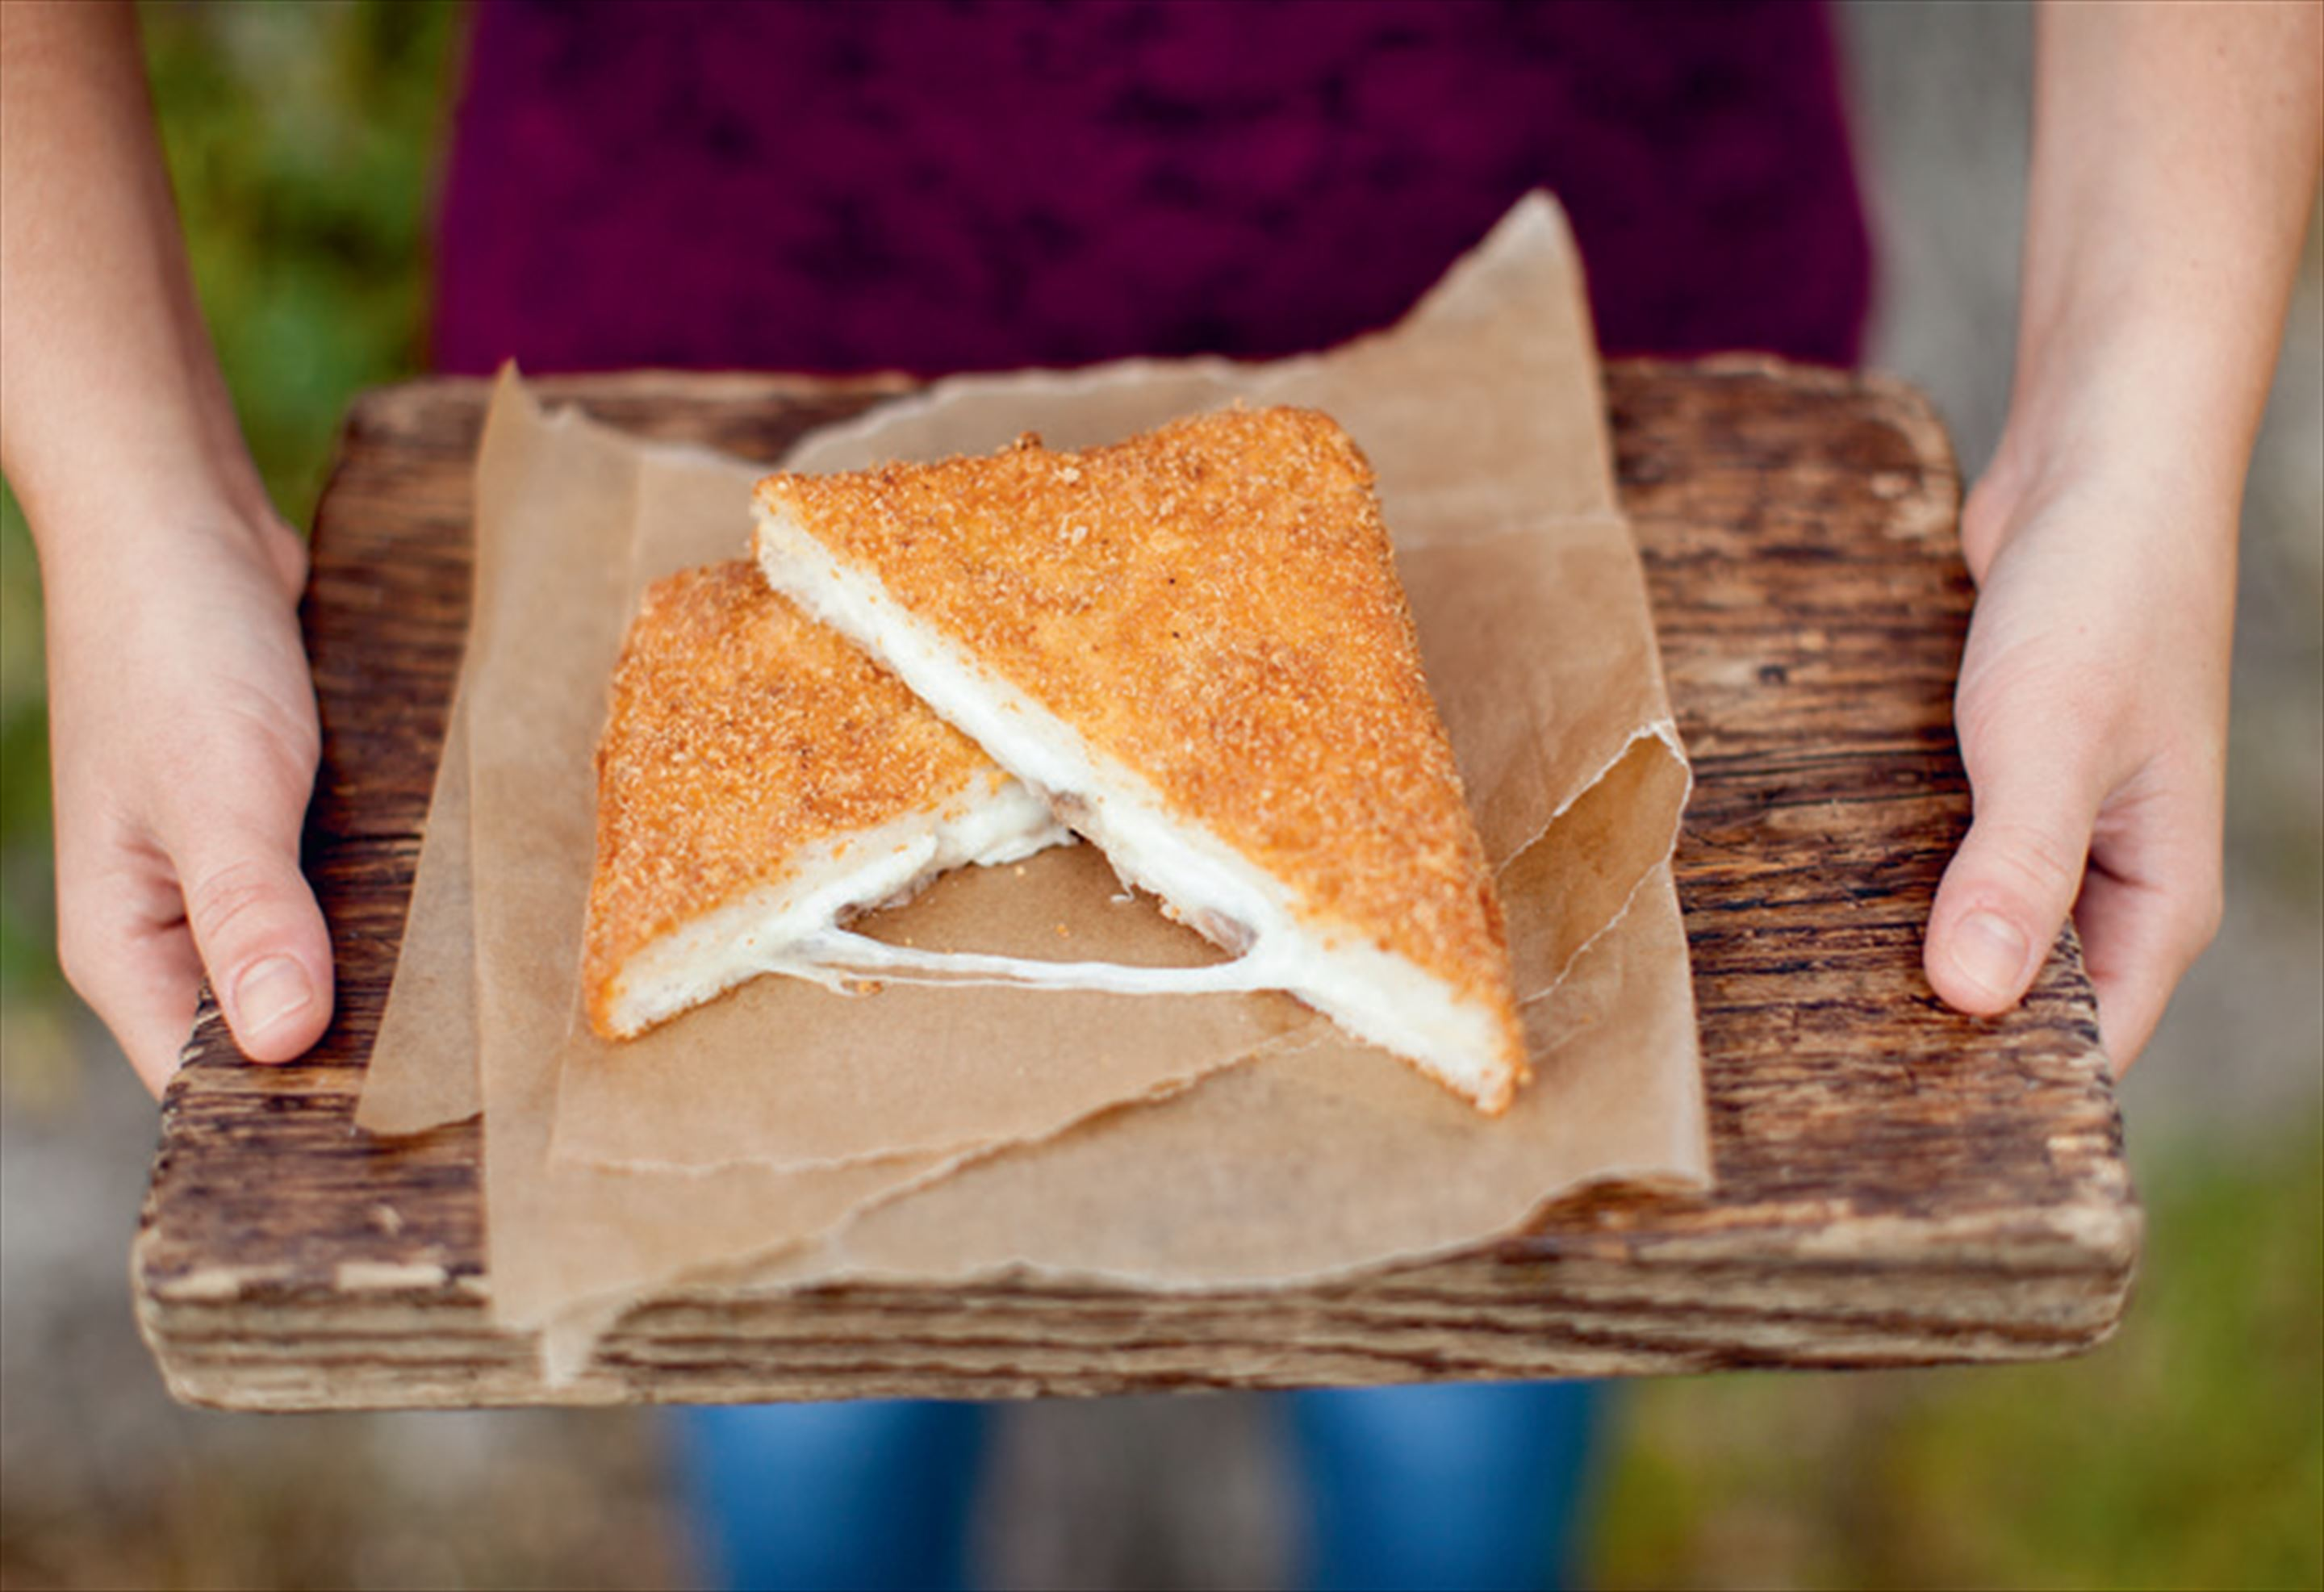 Deep-fried mozzarella sandwiches